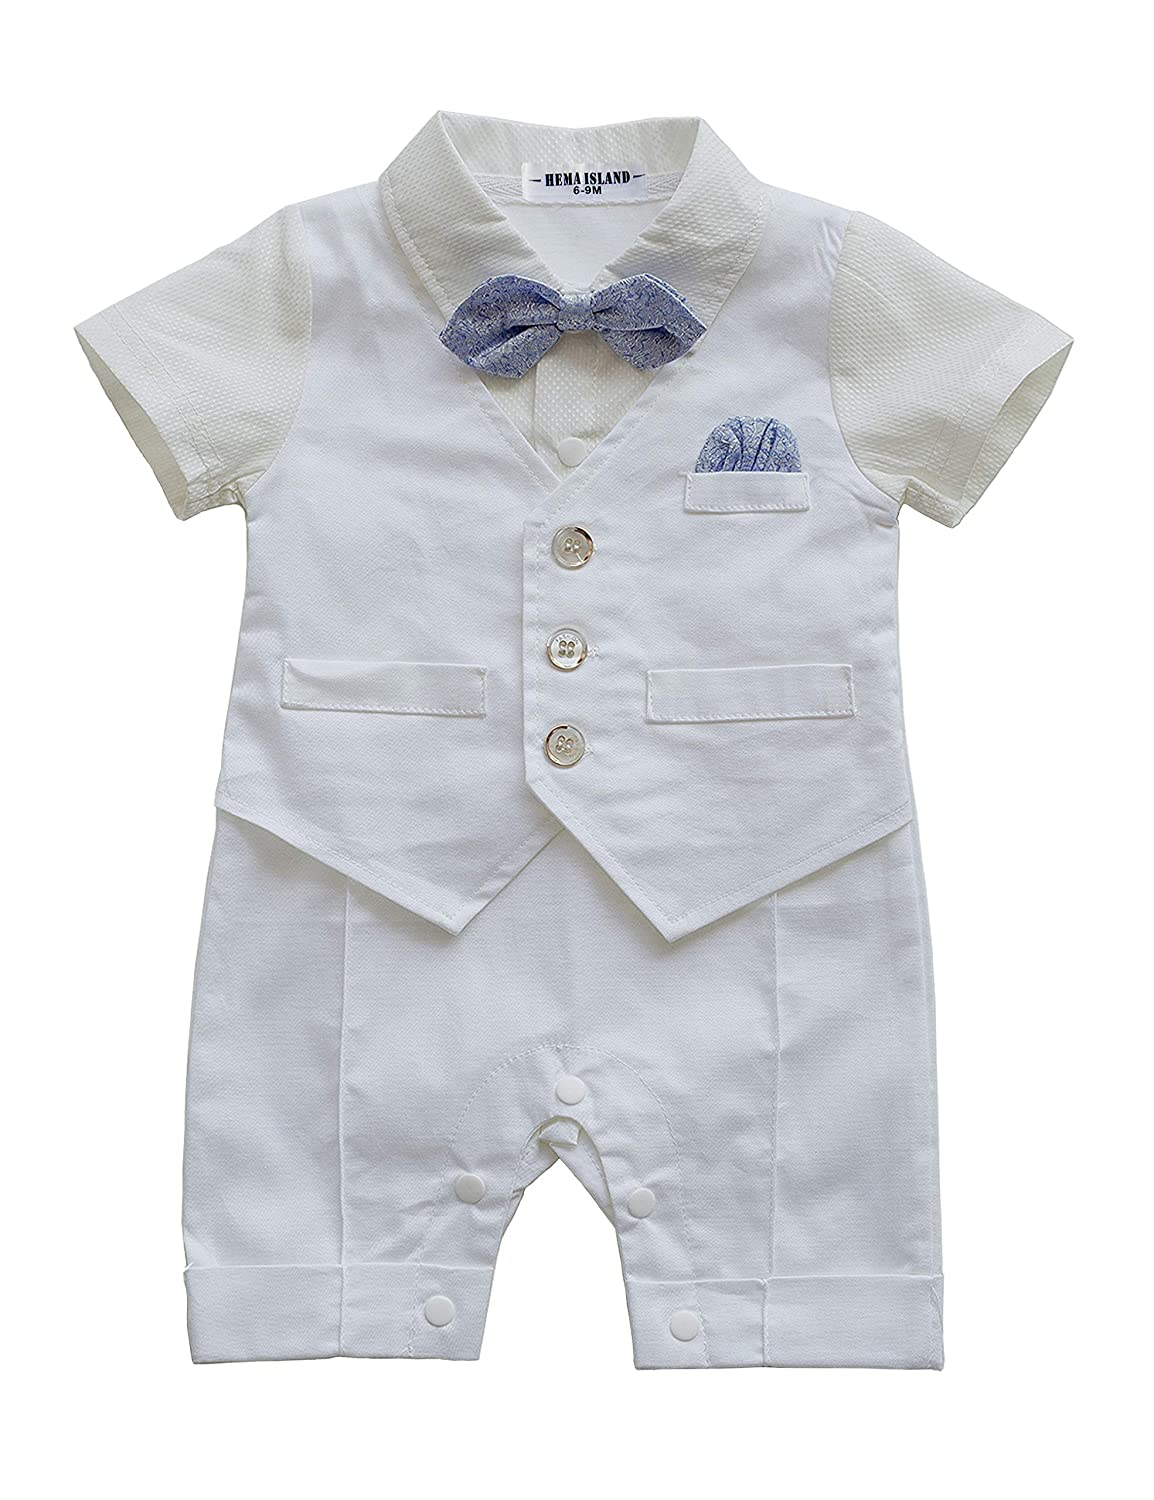 【大注目】 HeMa Island SHIRT SHIRT ベビーボーイズ B07DHJ49ZR ホワイト 9 12 - - 12 Months 9 - 12 Months|ホワイト, GOOD TOOLS:8b908483 --- arianechie.dominiotemporario.com